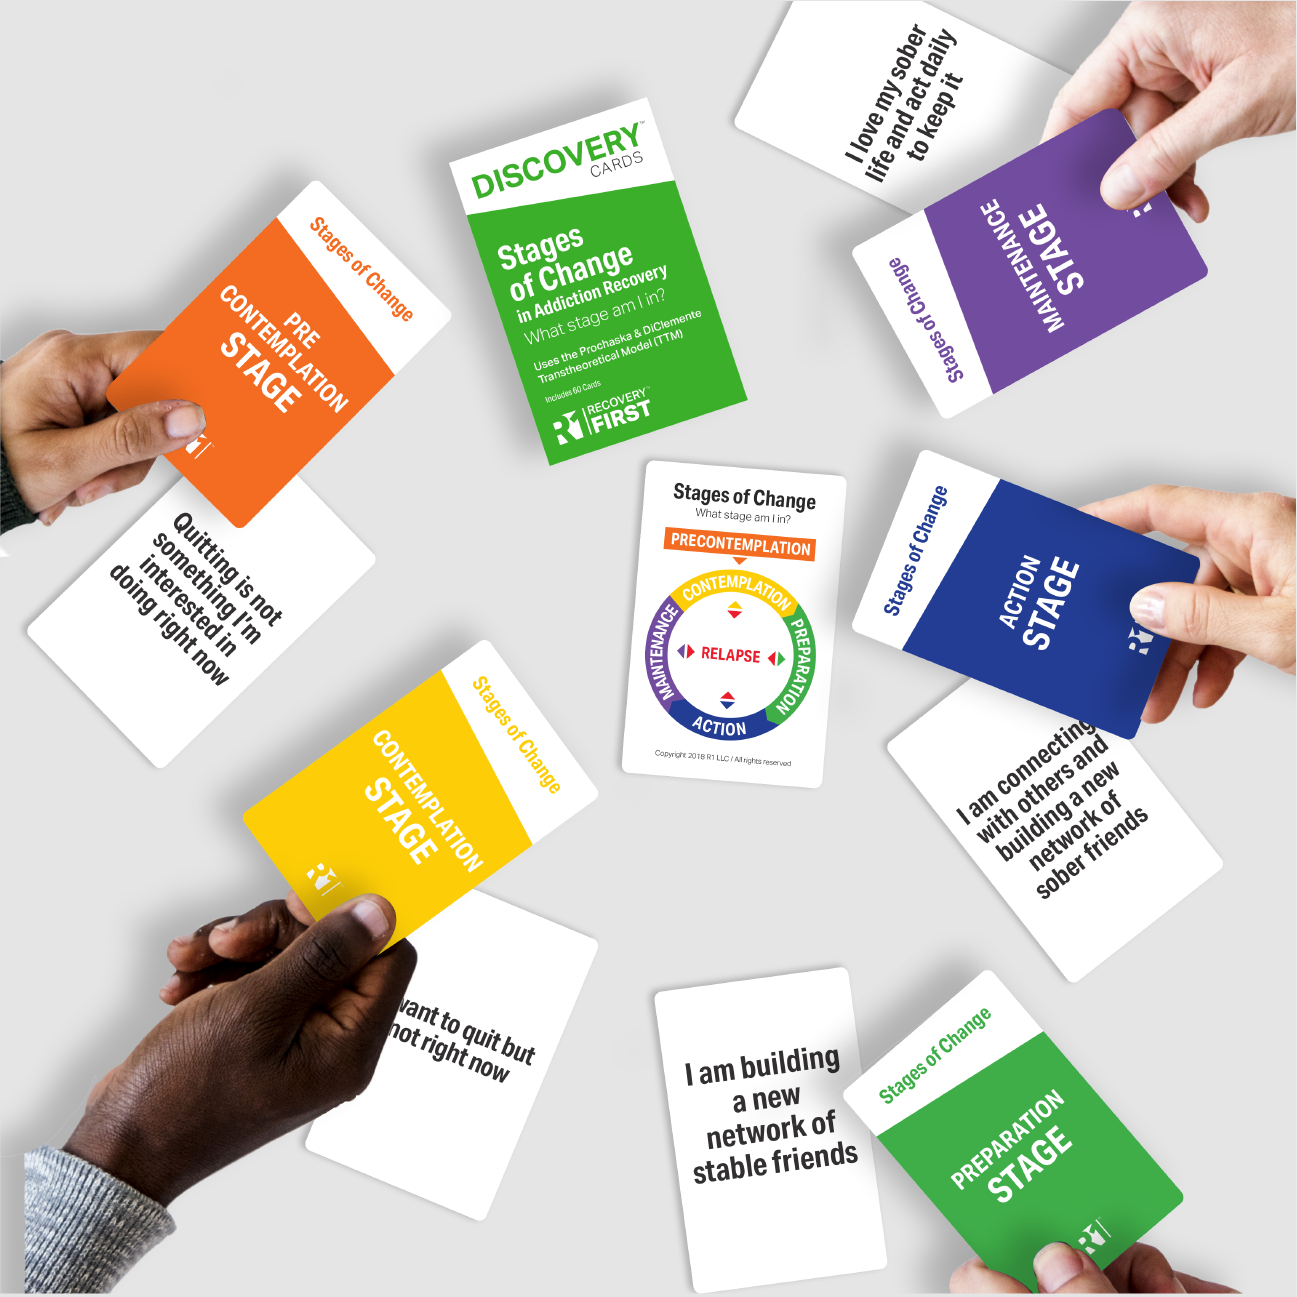 Discovery Cards are a great example of how hands-on tools create engaging learning experiences through self-discovery